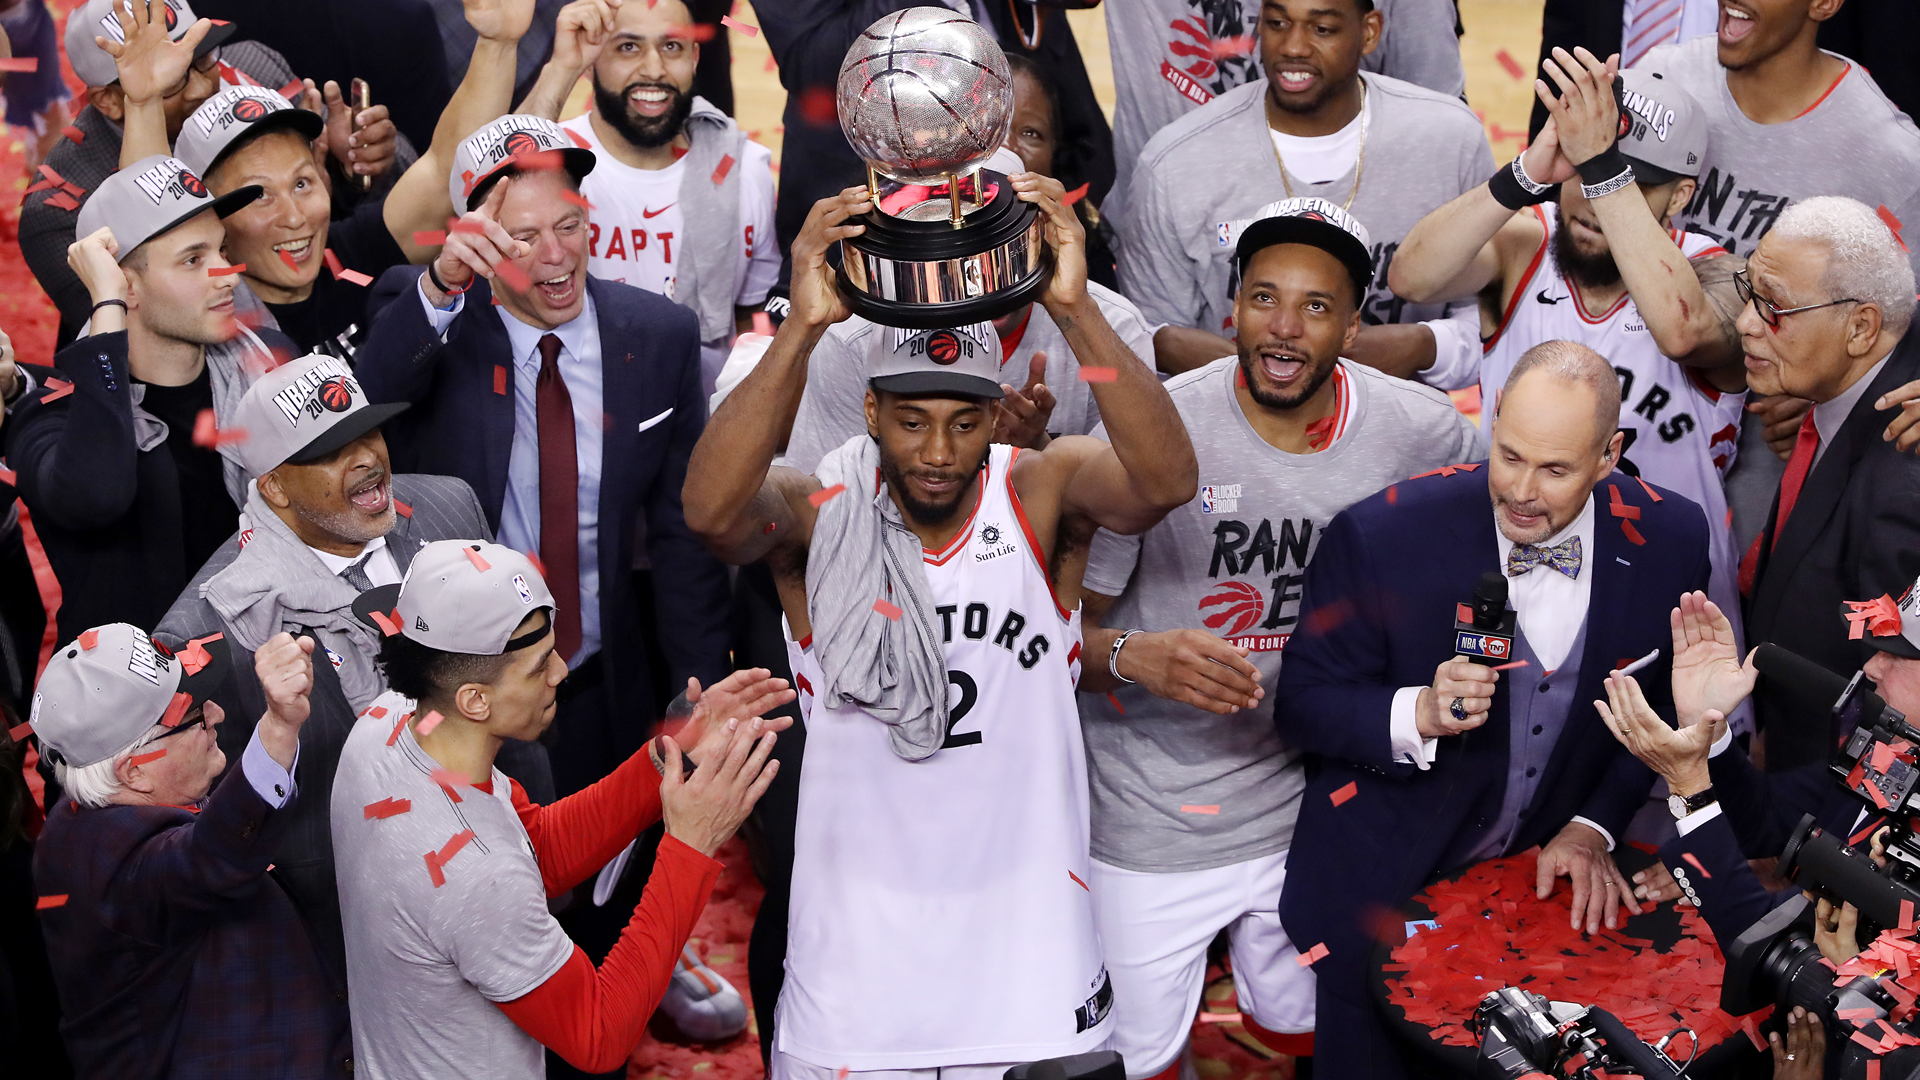 NBA playoffs 2019: Best player in the NBA? Kawhi Leonard focused on Raptors' success